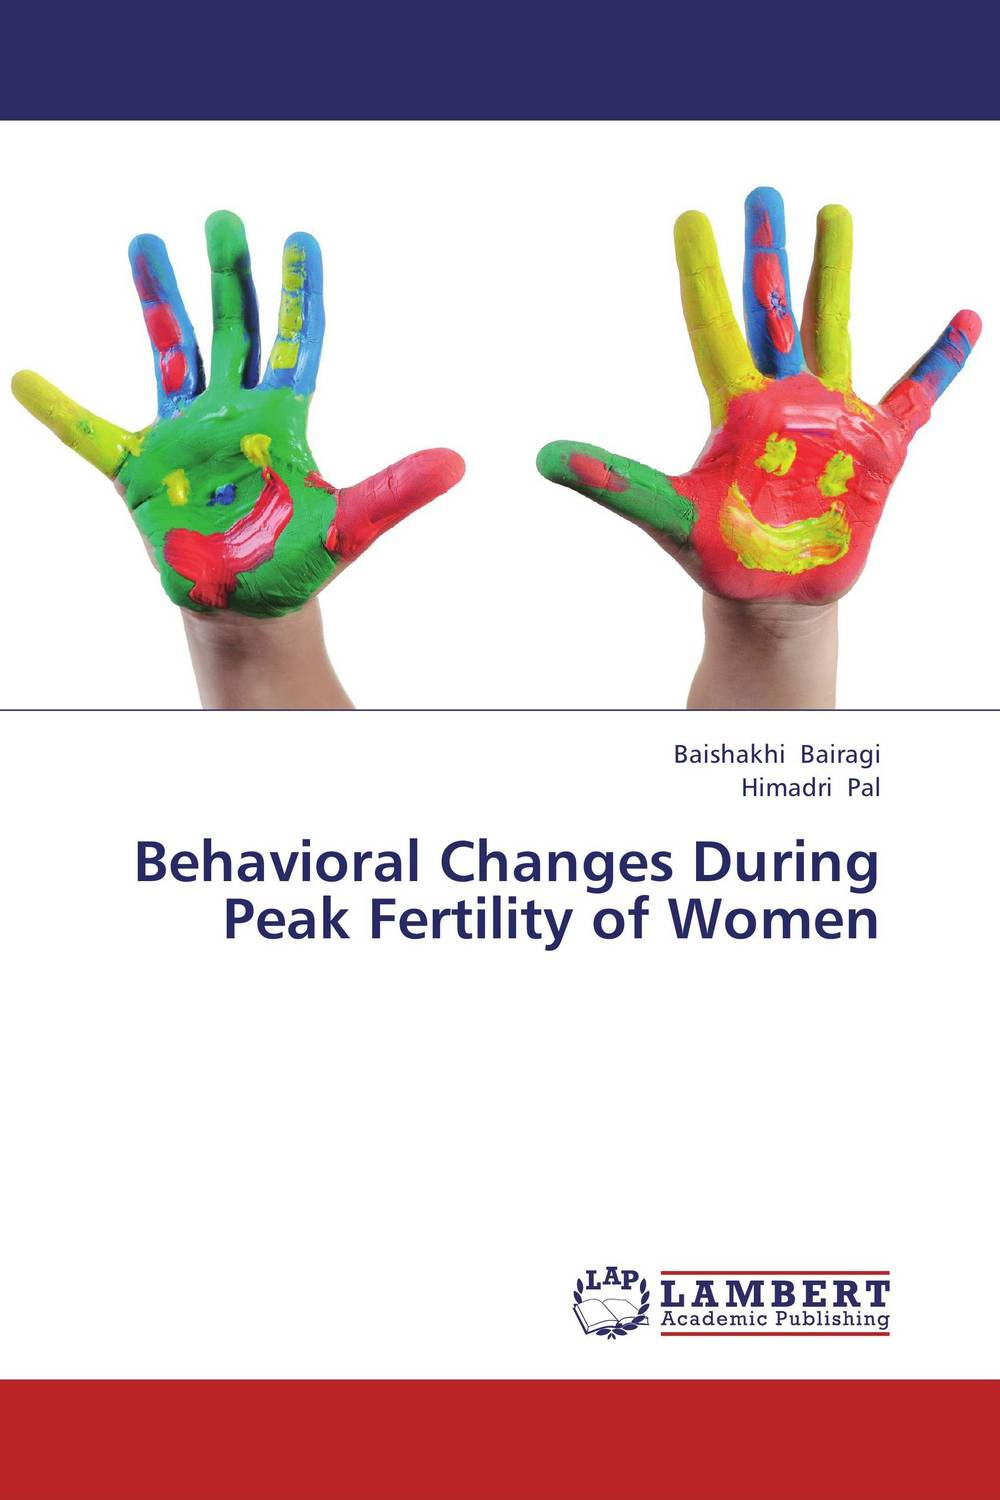 Behavioral Changes During Peak Fertility of Women kazi rifat ahmed simu akter and kushal roy alternative development loom by reason of natural changes